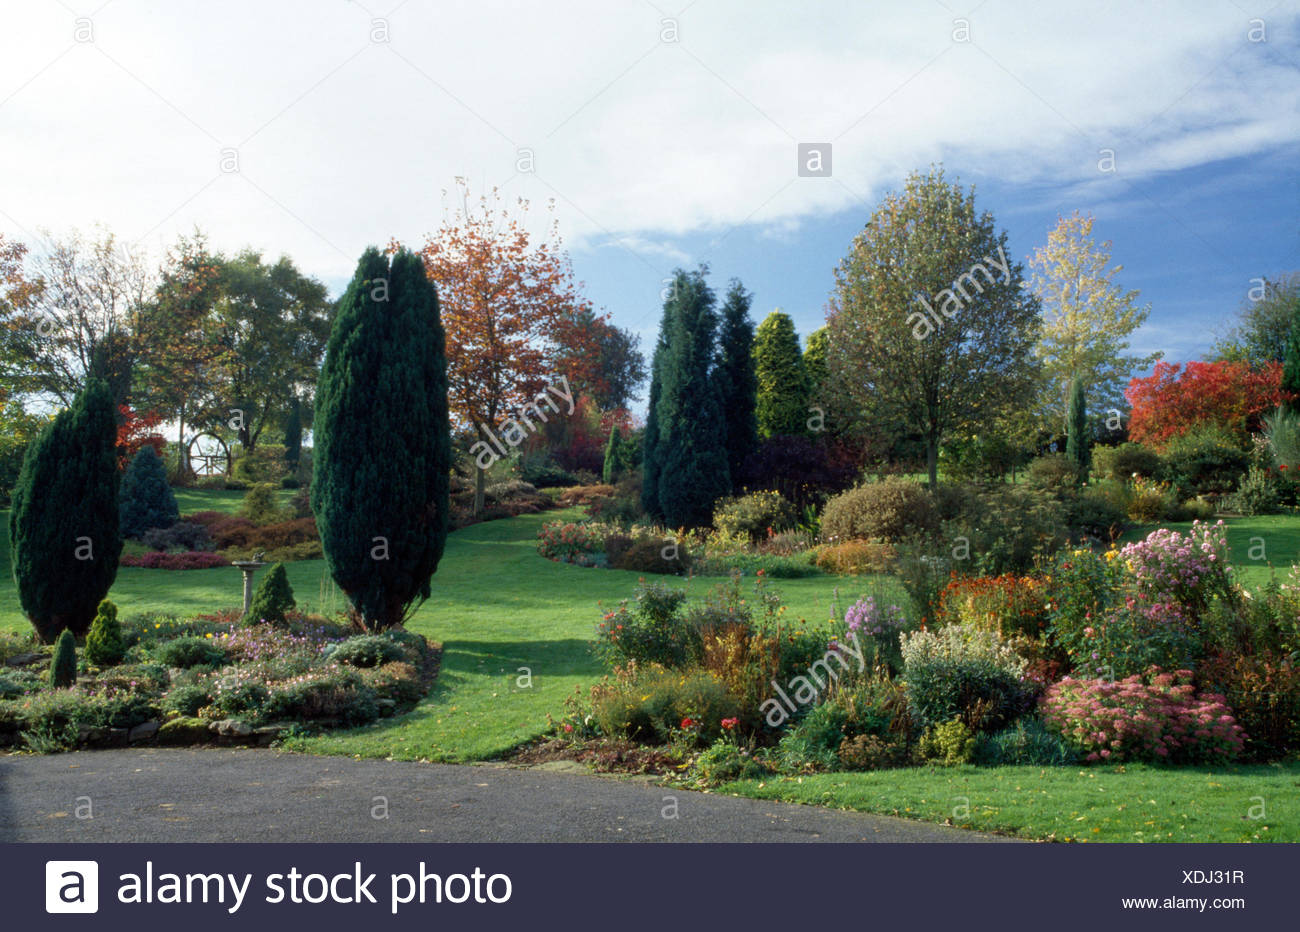 Tall conifers in a large, well tended country garden with small shrubs in neat borders - Stock Image